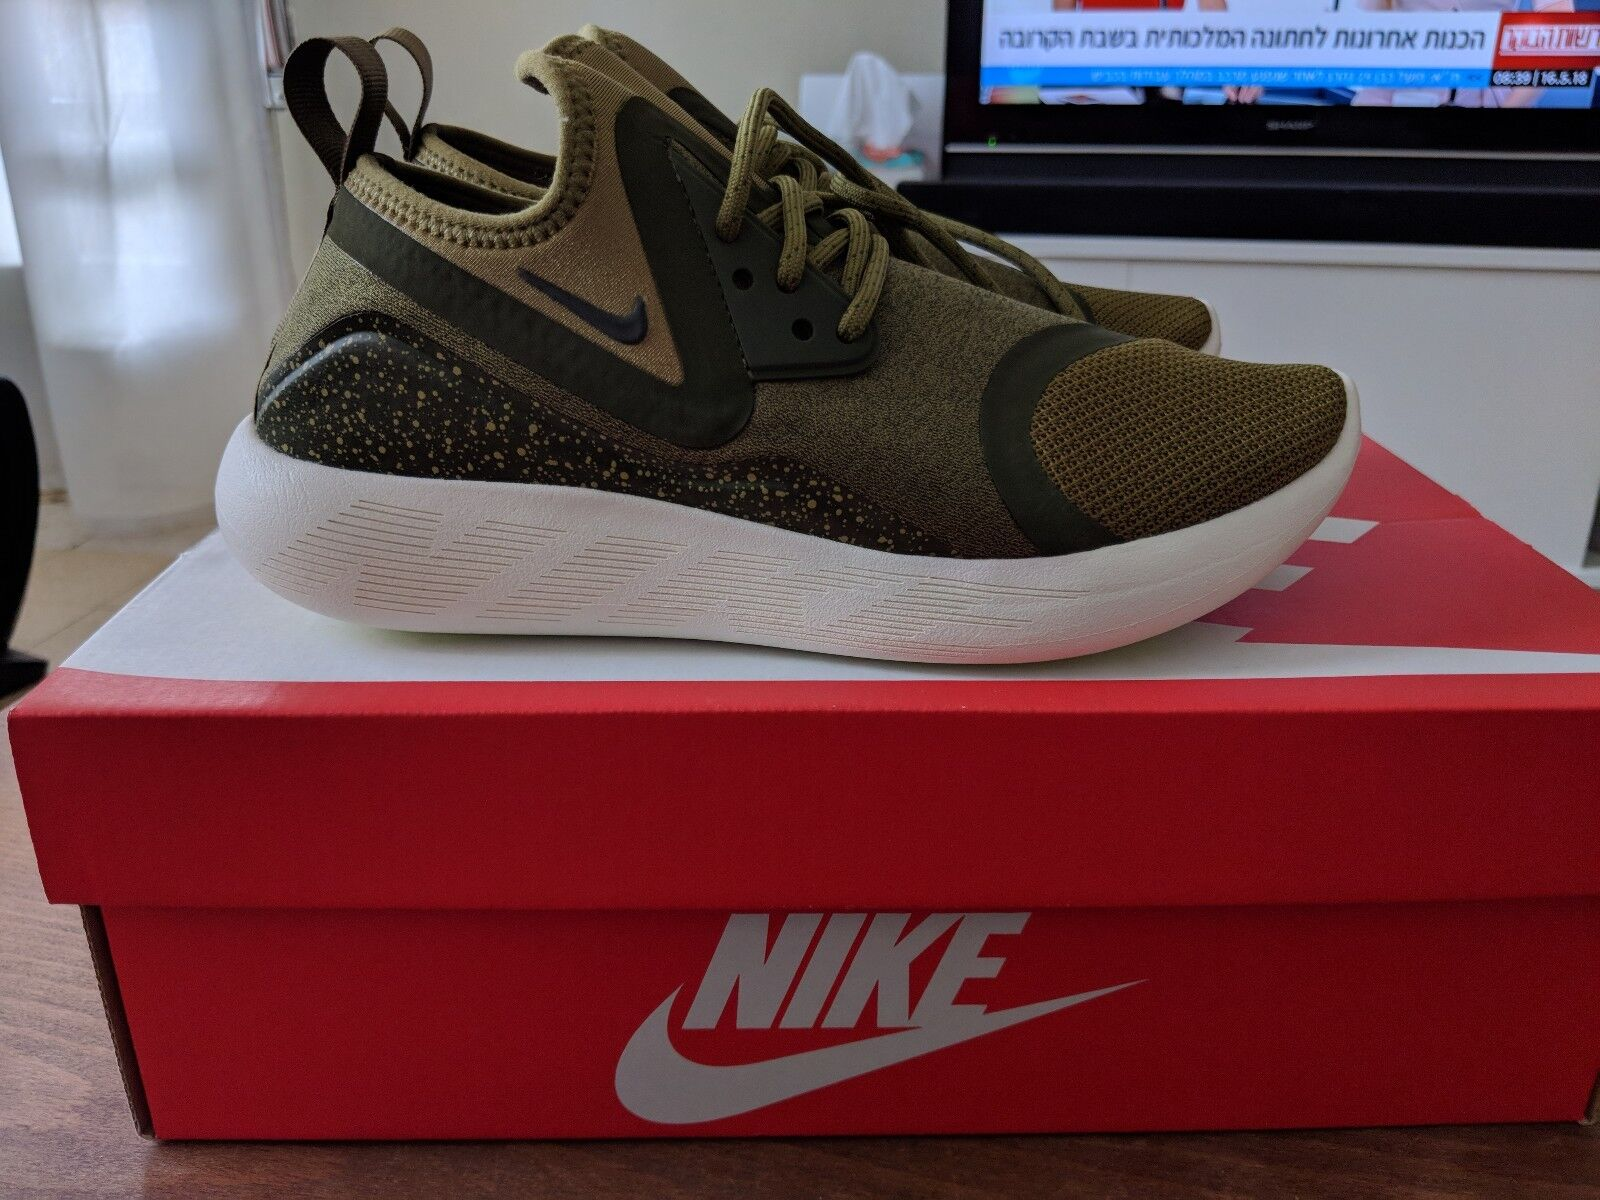 Nike Lunarcharge Essential femmes's chaussures Taille UK UK UK 5.5 US 7 EU 38.5 ded610